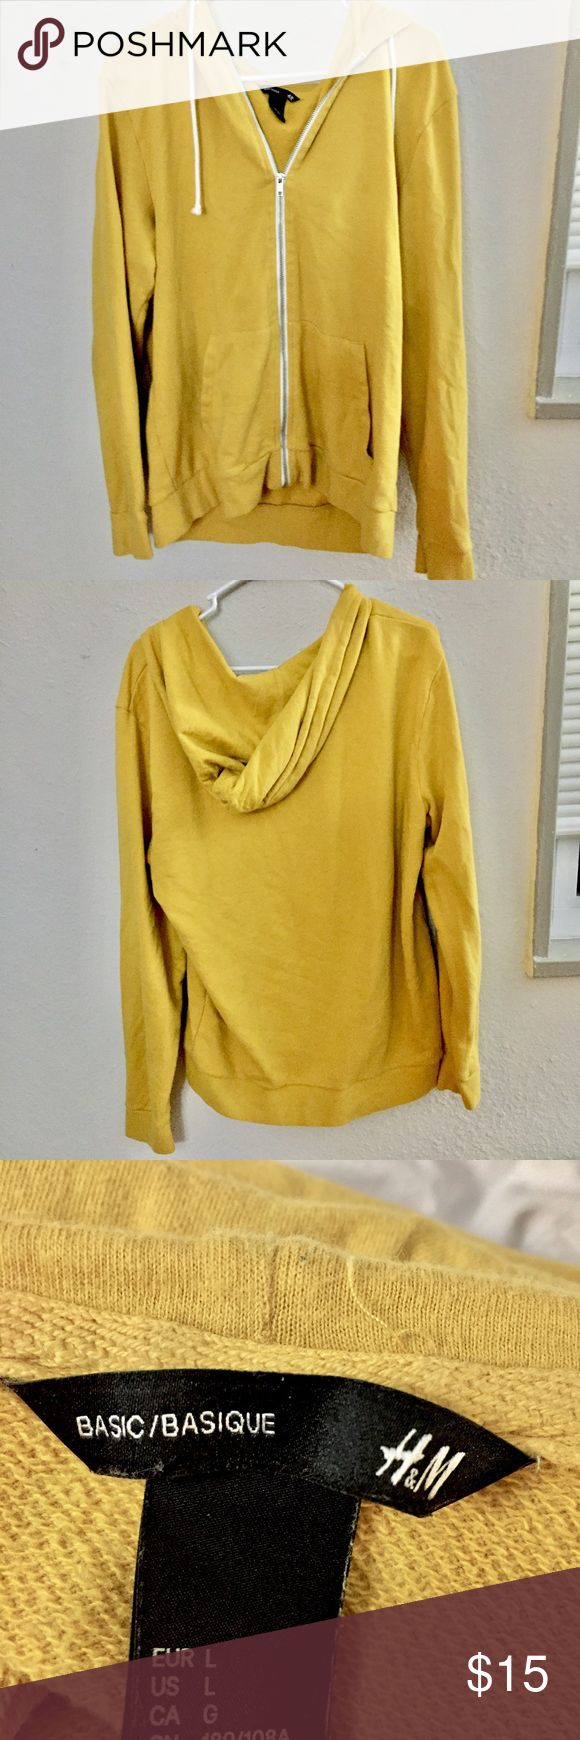 Yellow zip up hoodie Yellow zip up hoodie. Good condition. Comfy. Feel free to leave an offer! H&M Sweaters